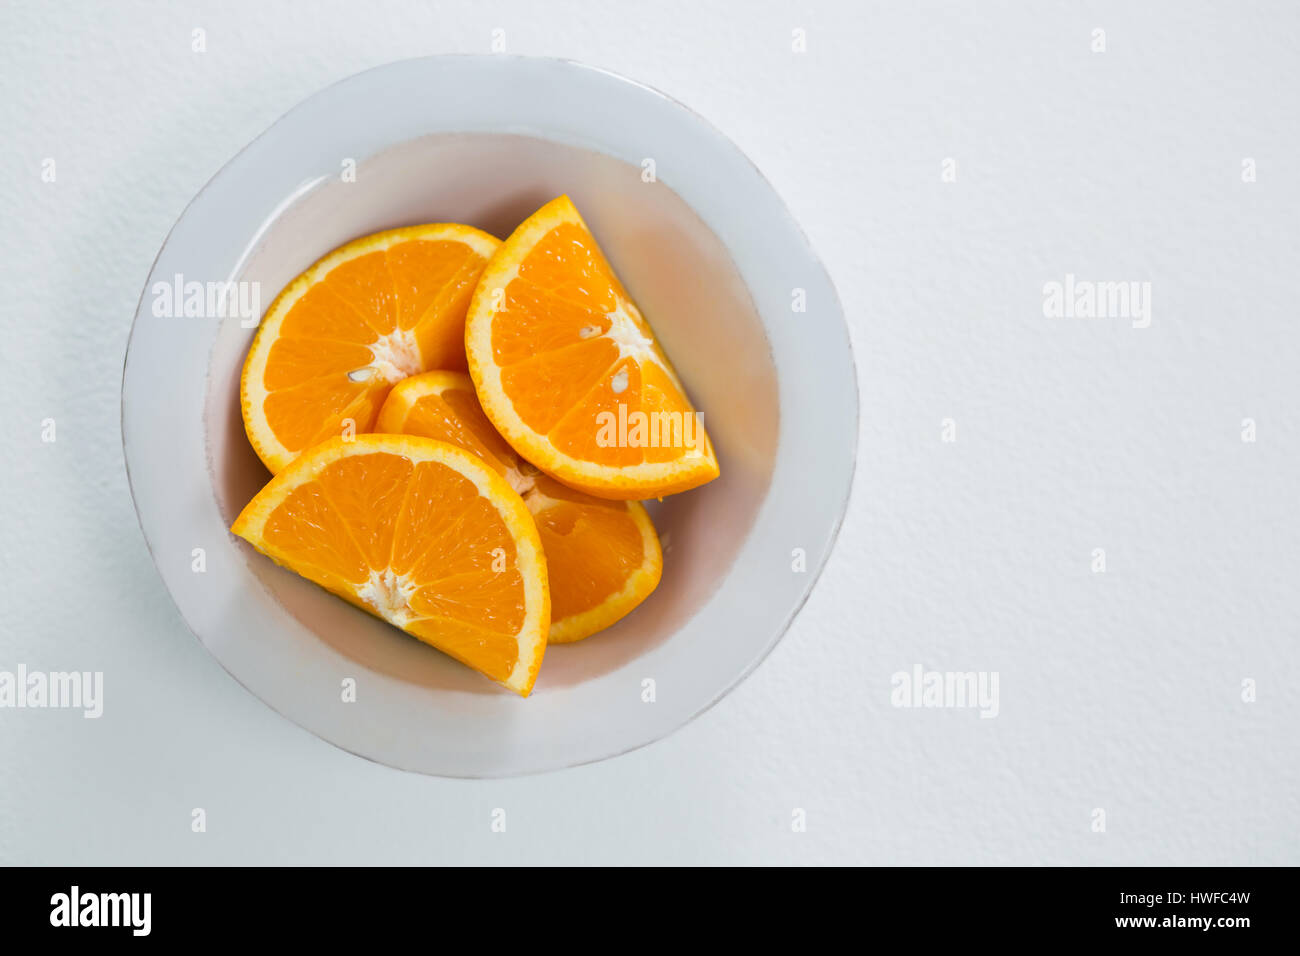 Overhead of oranges slices in bowl on white background - Stock Image